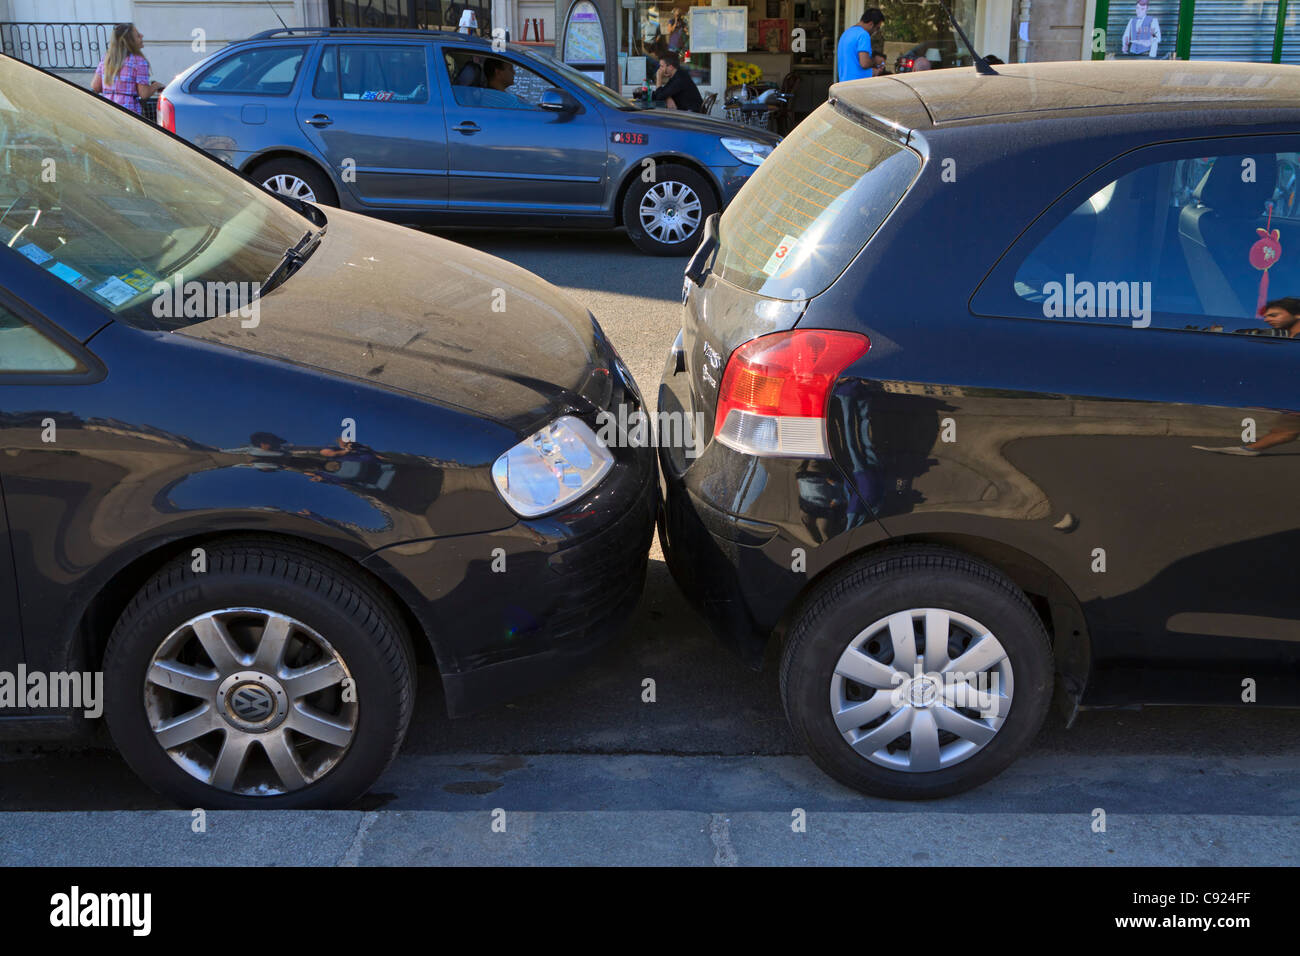 Parking in Paris. Cars are often parked so close they touch each ...